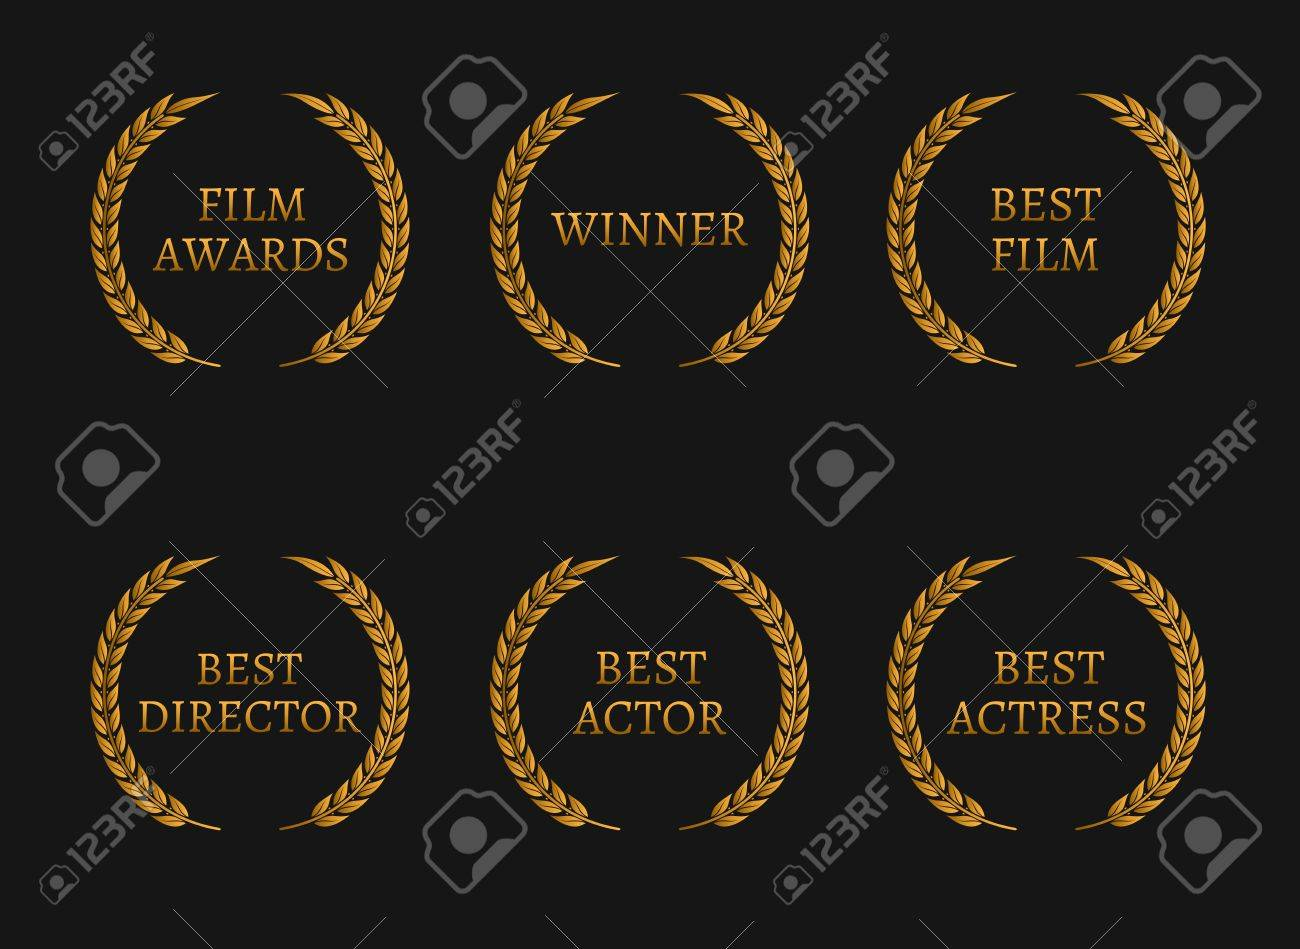 Film Academy Awards Winners And Best Nominee Gold Wreaths On